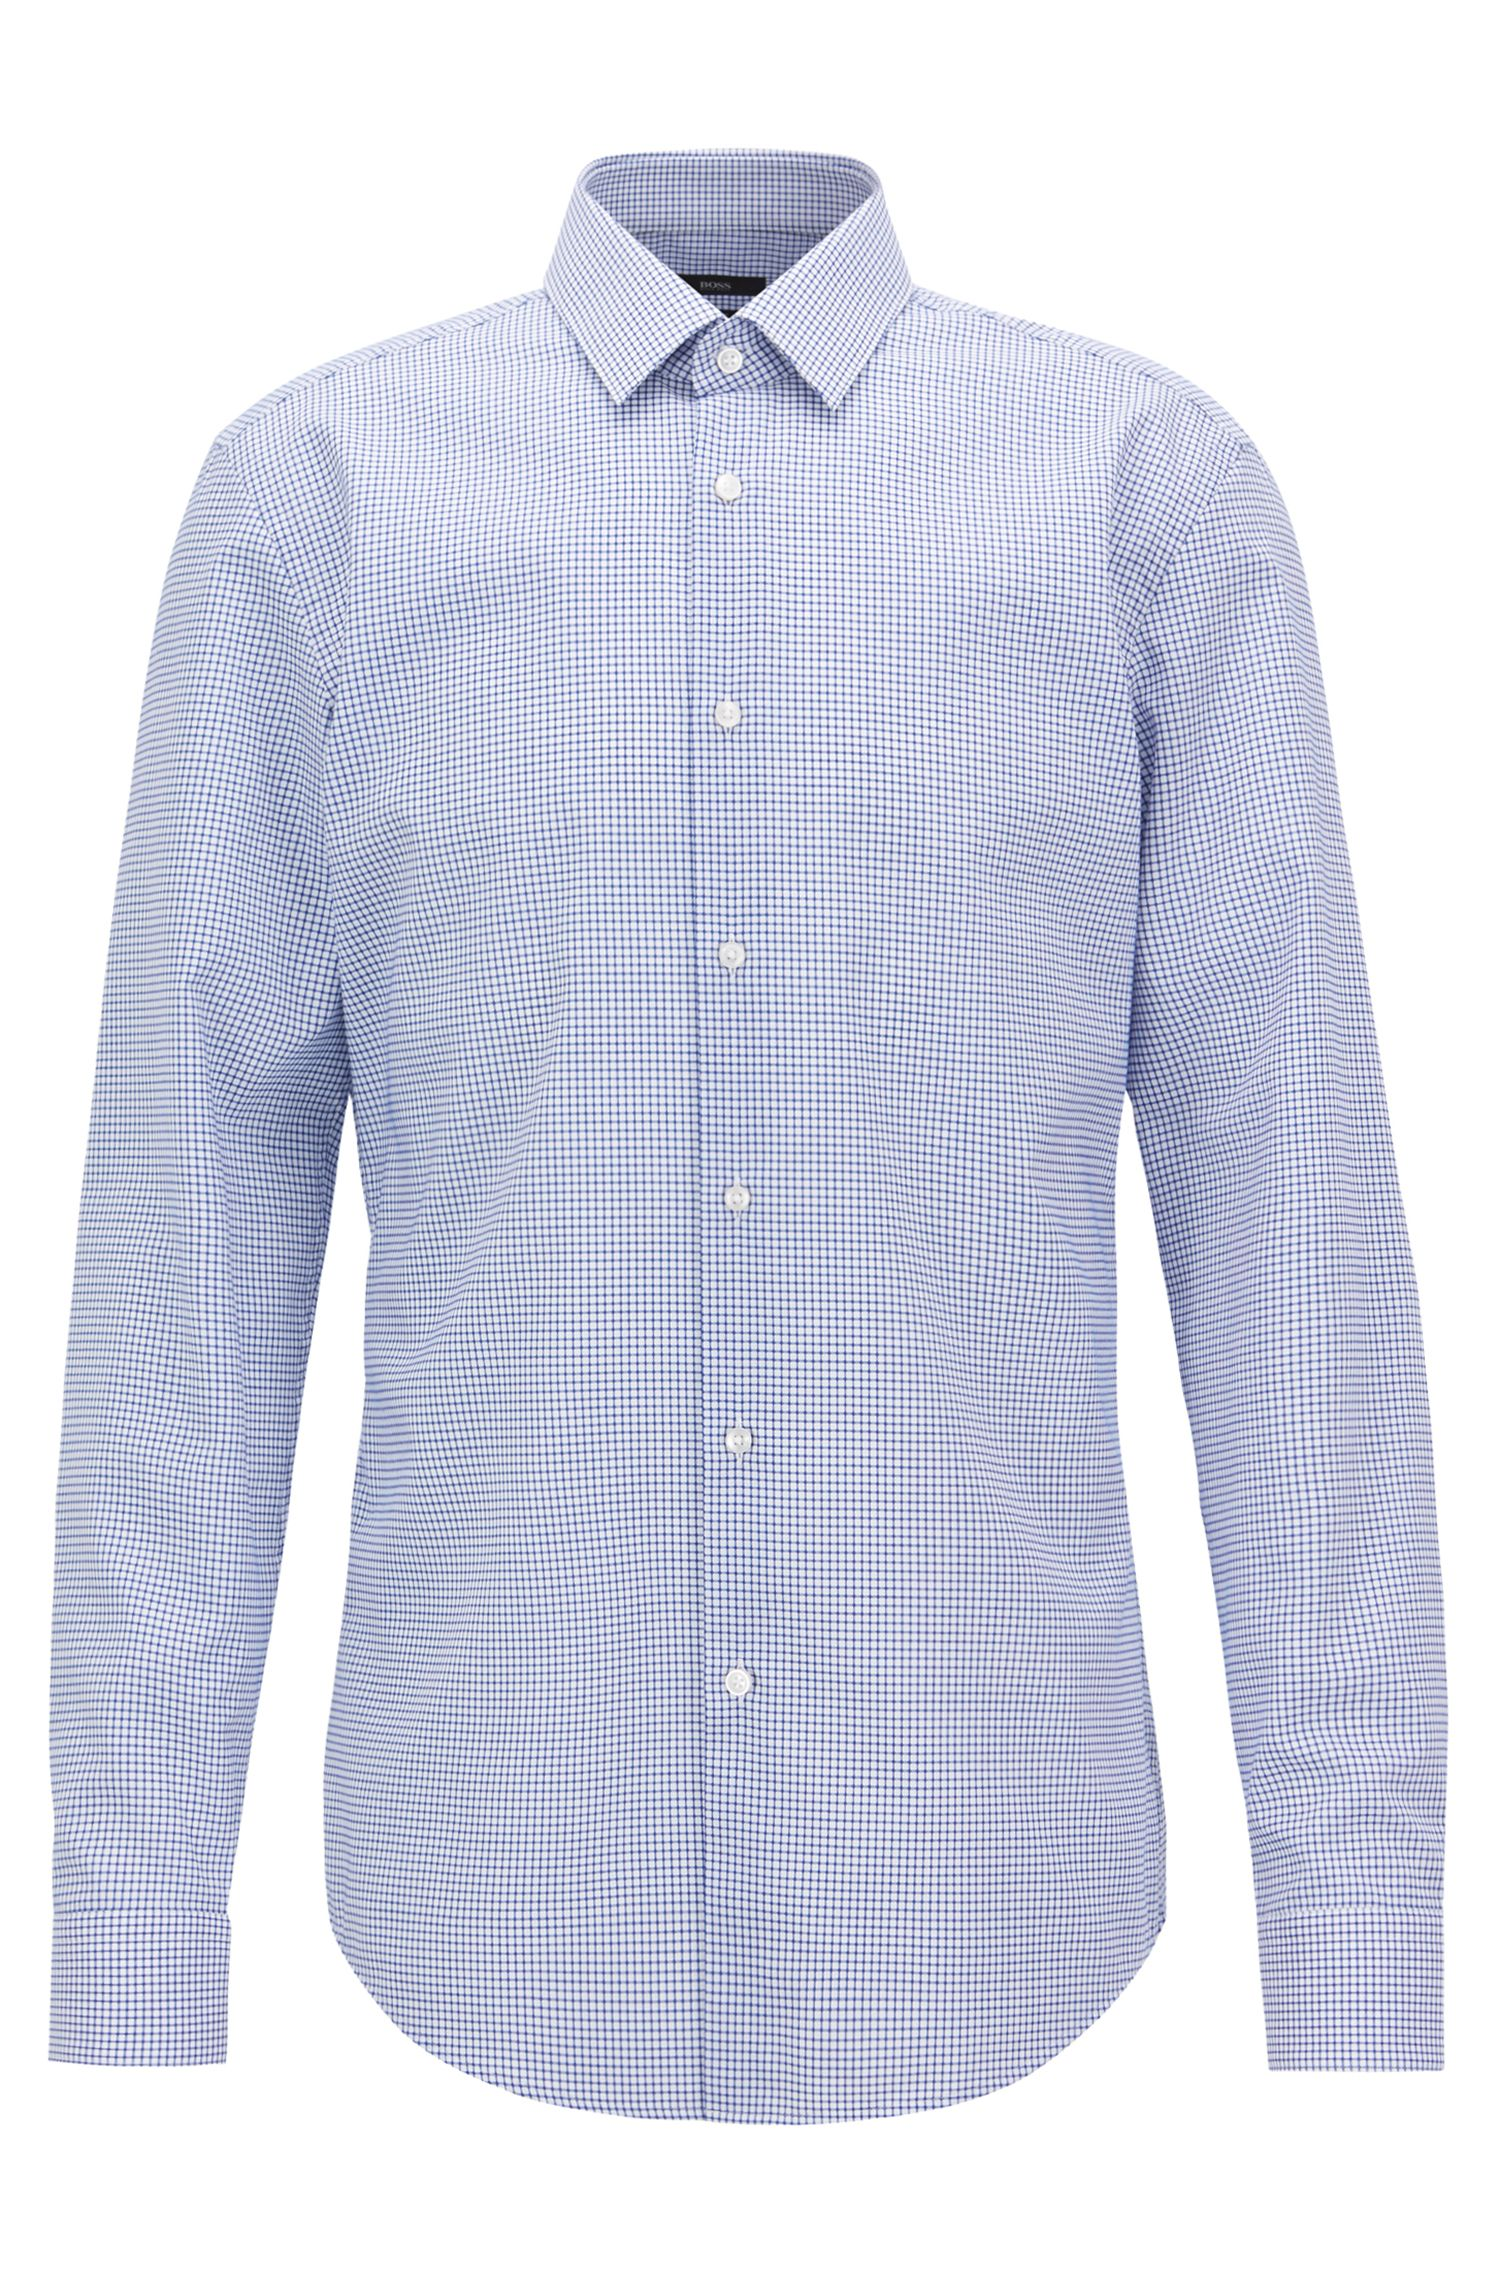 Slim-fit shirt in easy-iron checked cotton poplin